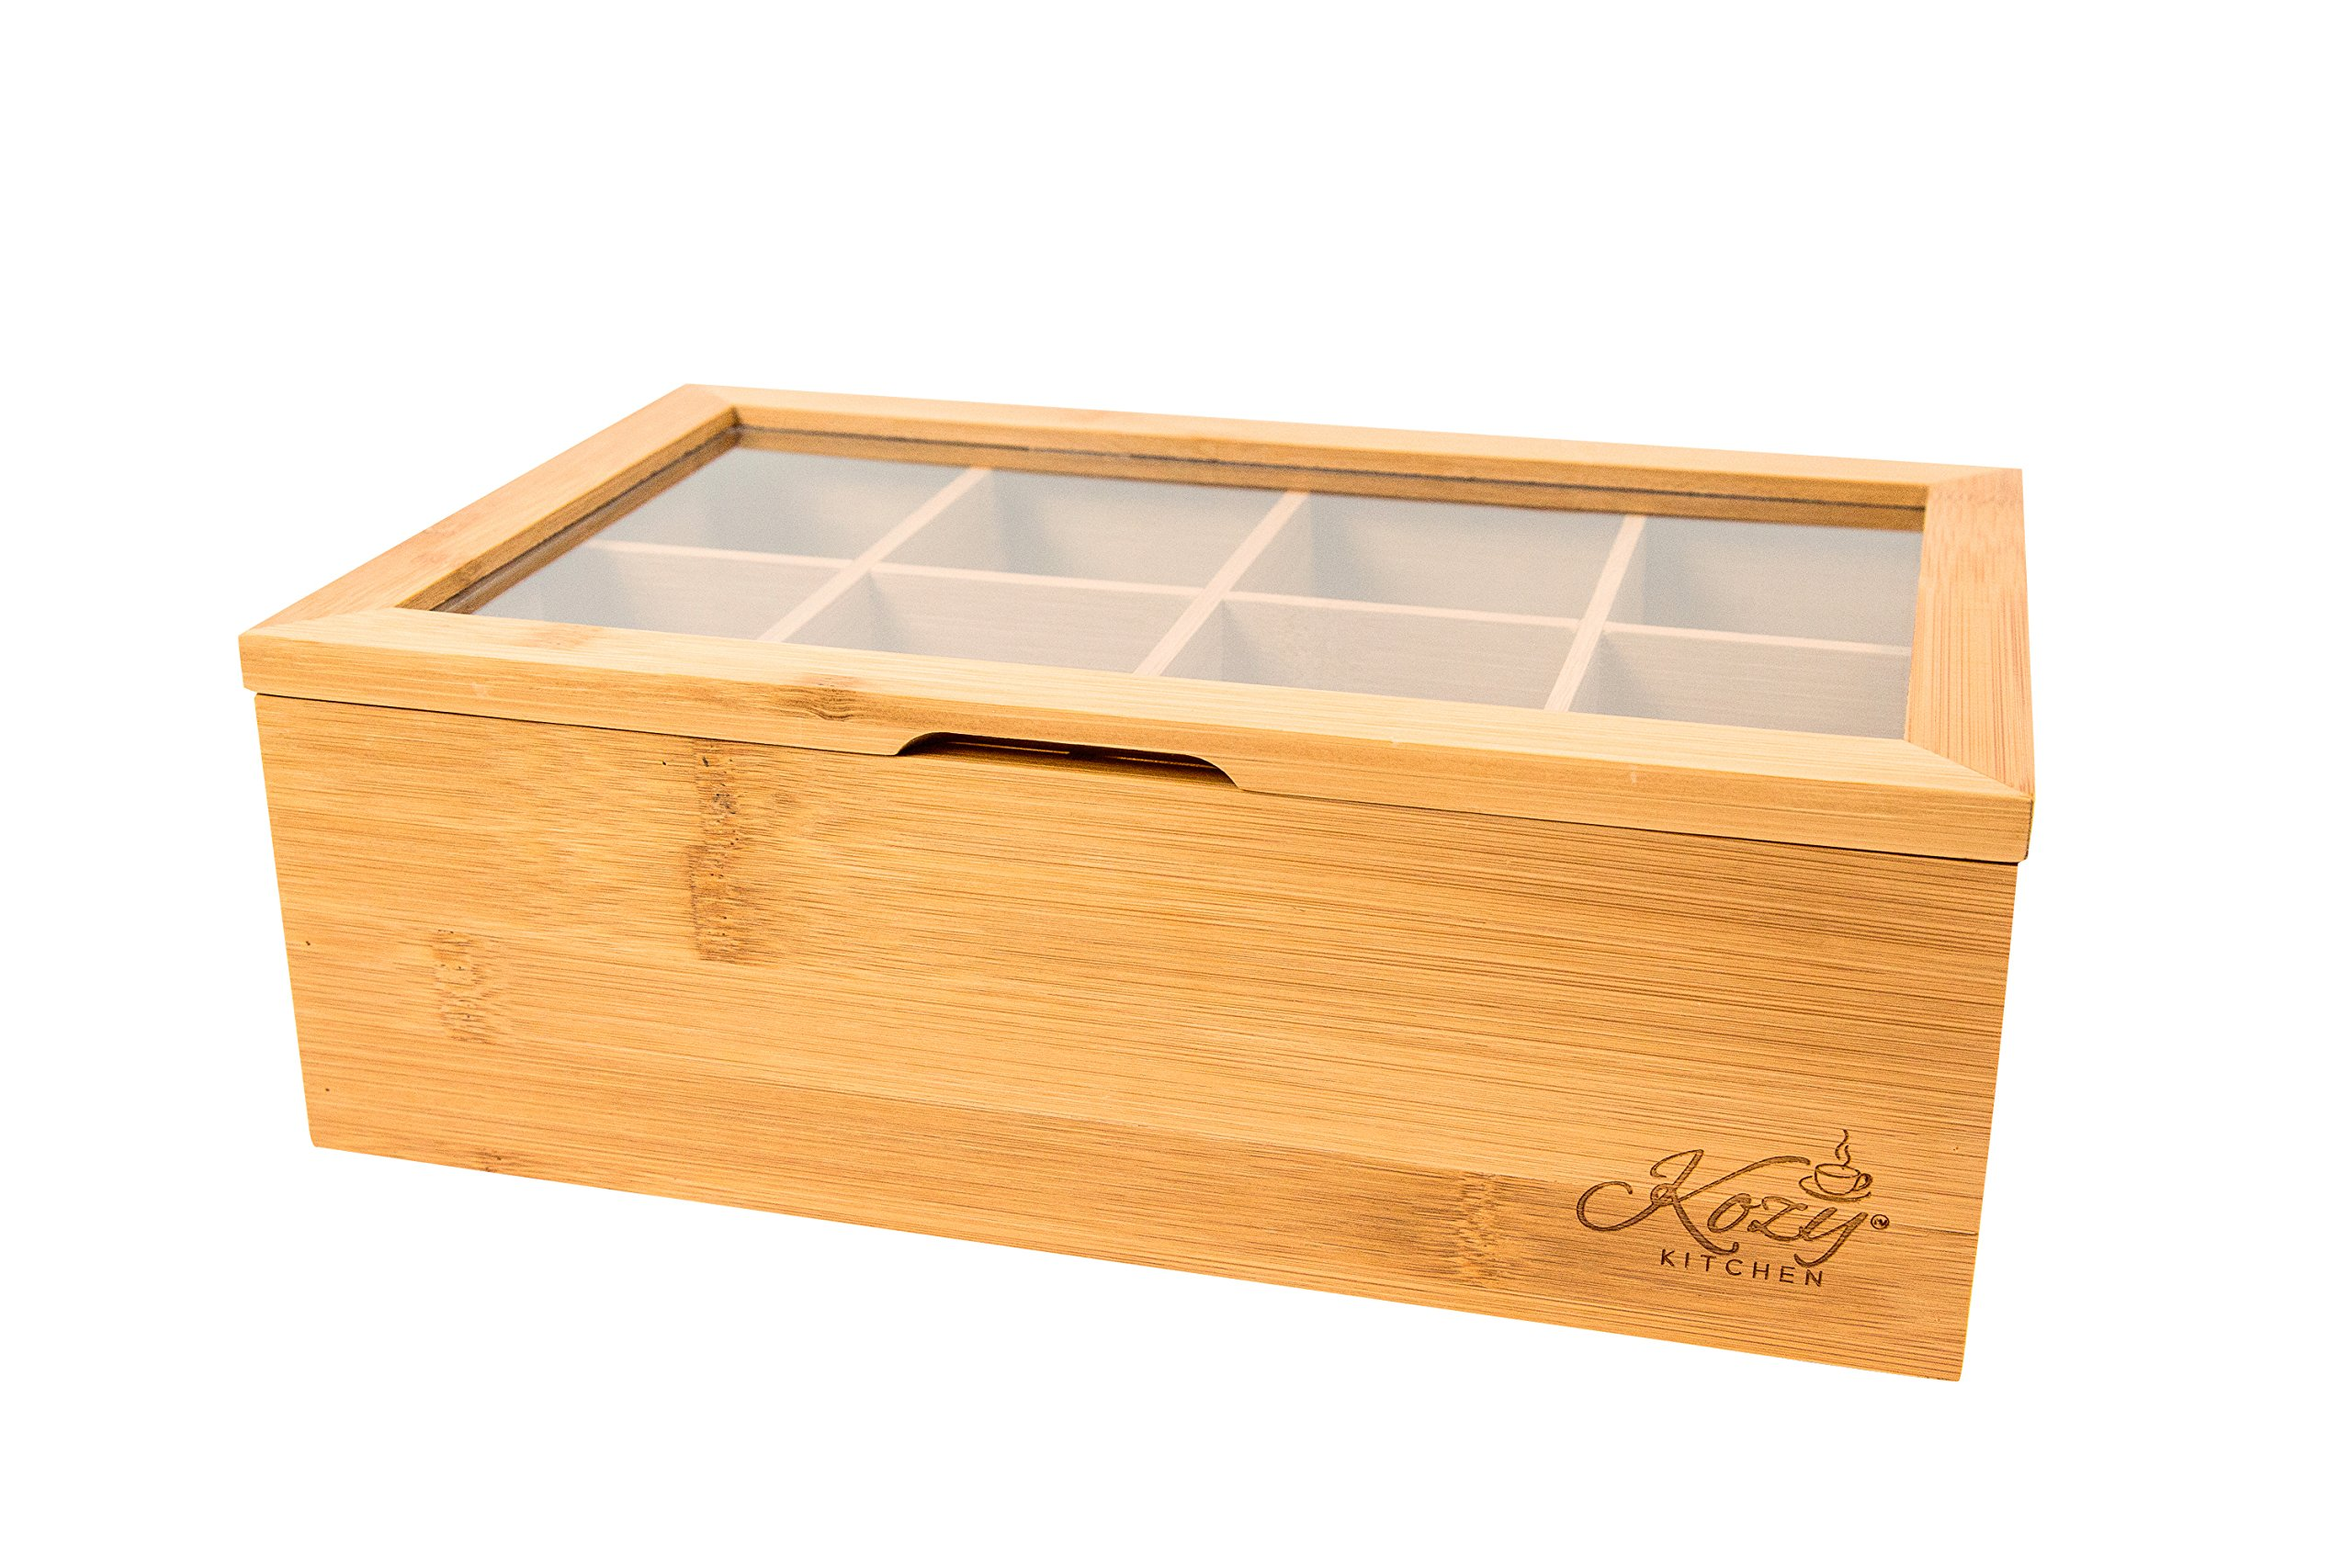 Bamboo Tea Box Storage Organizer, 100% Natural Wooden Finish Tea Bag Organizer 8 Storage Compartments and Clear Shatterproof Hinged Lid by Kozy Kitchen (Image #4)